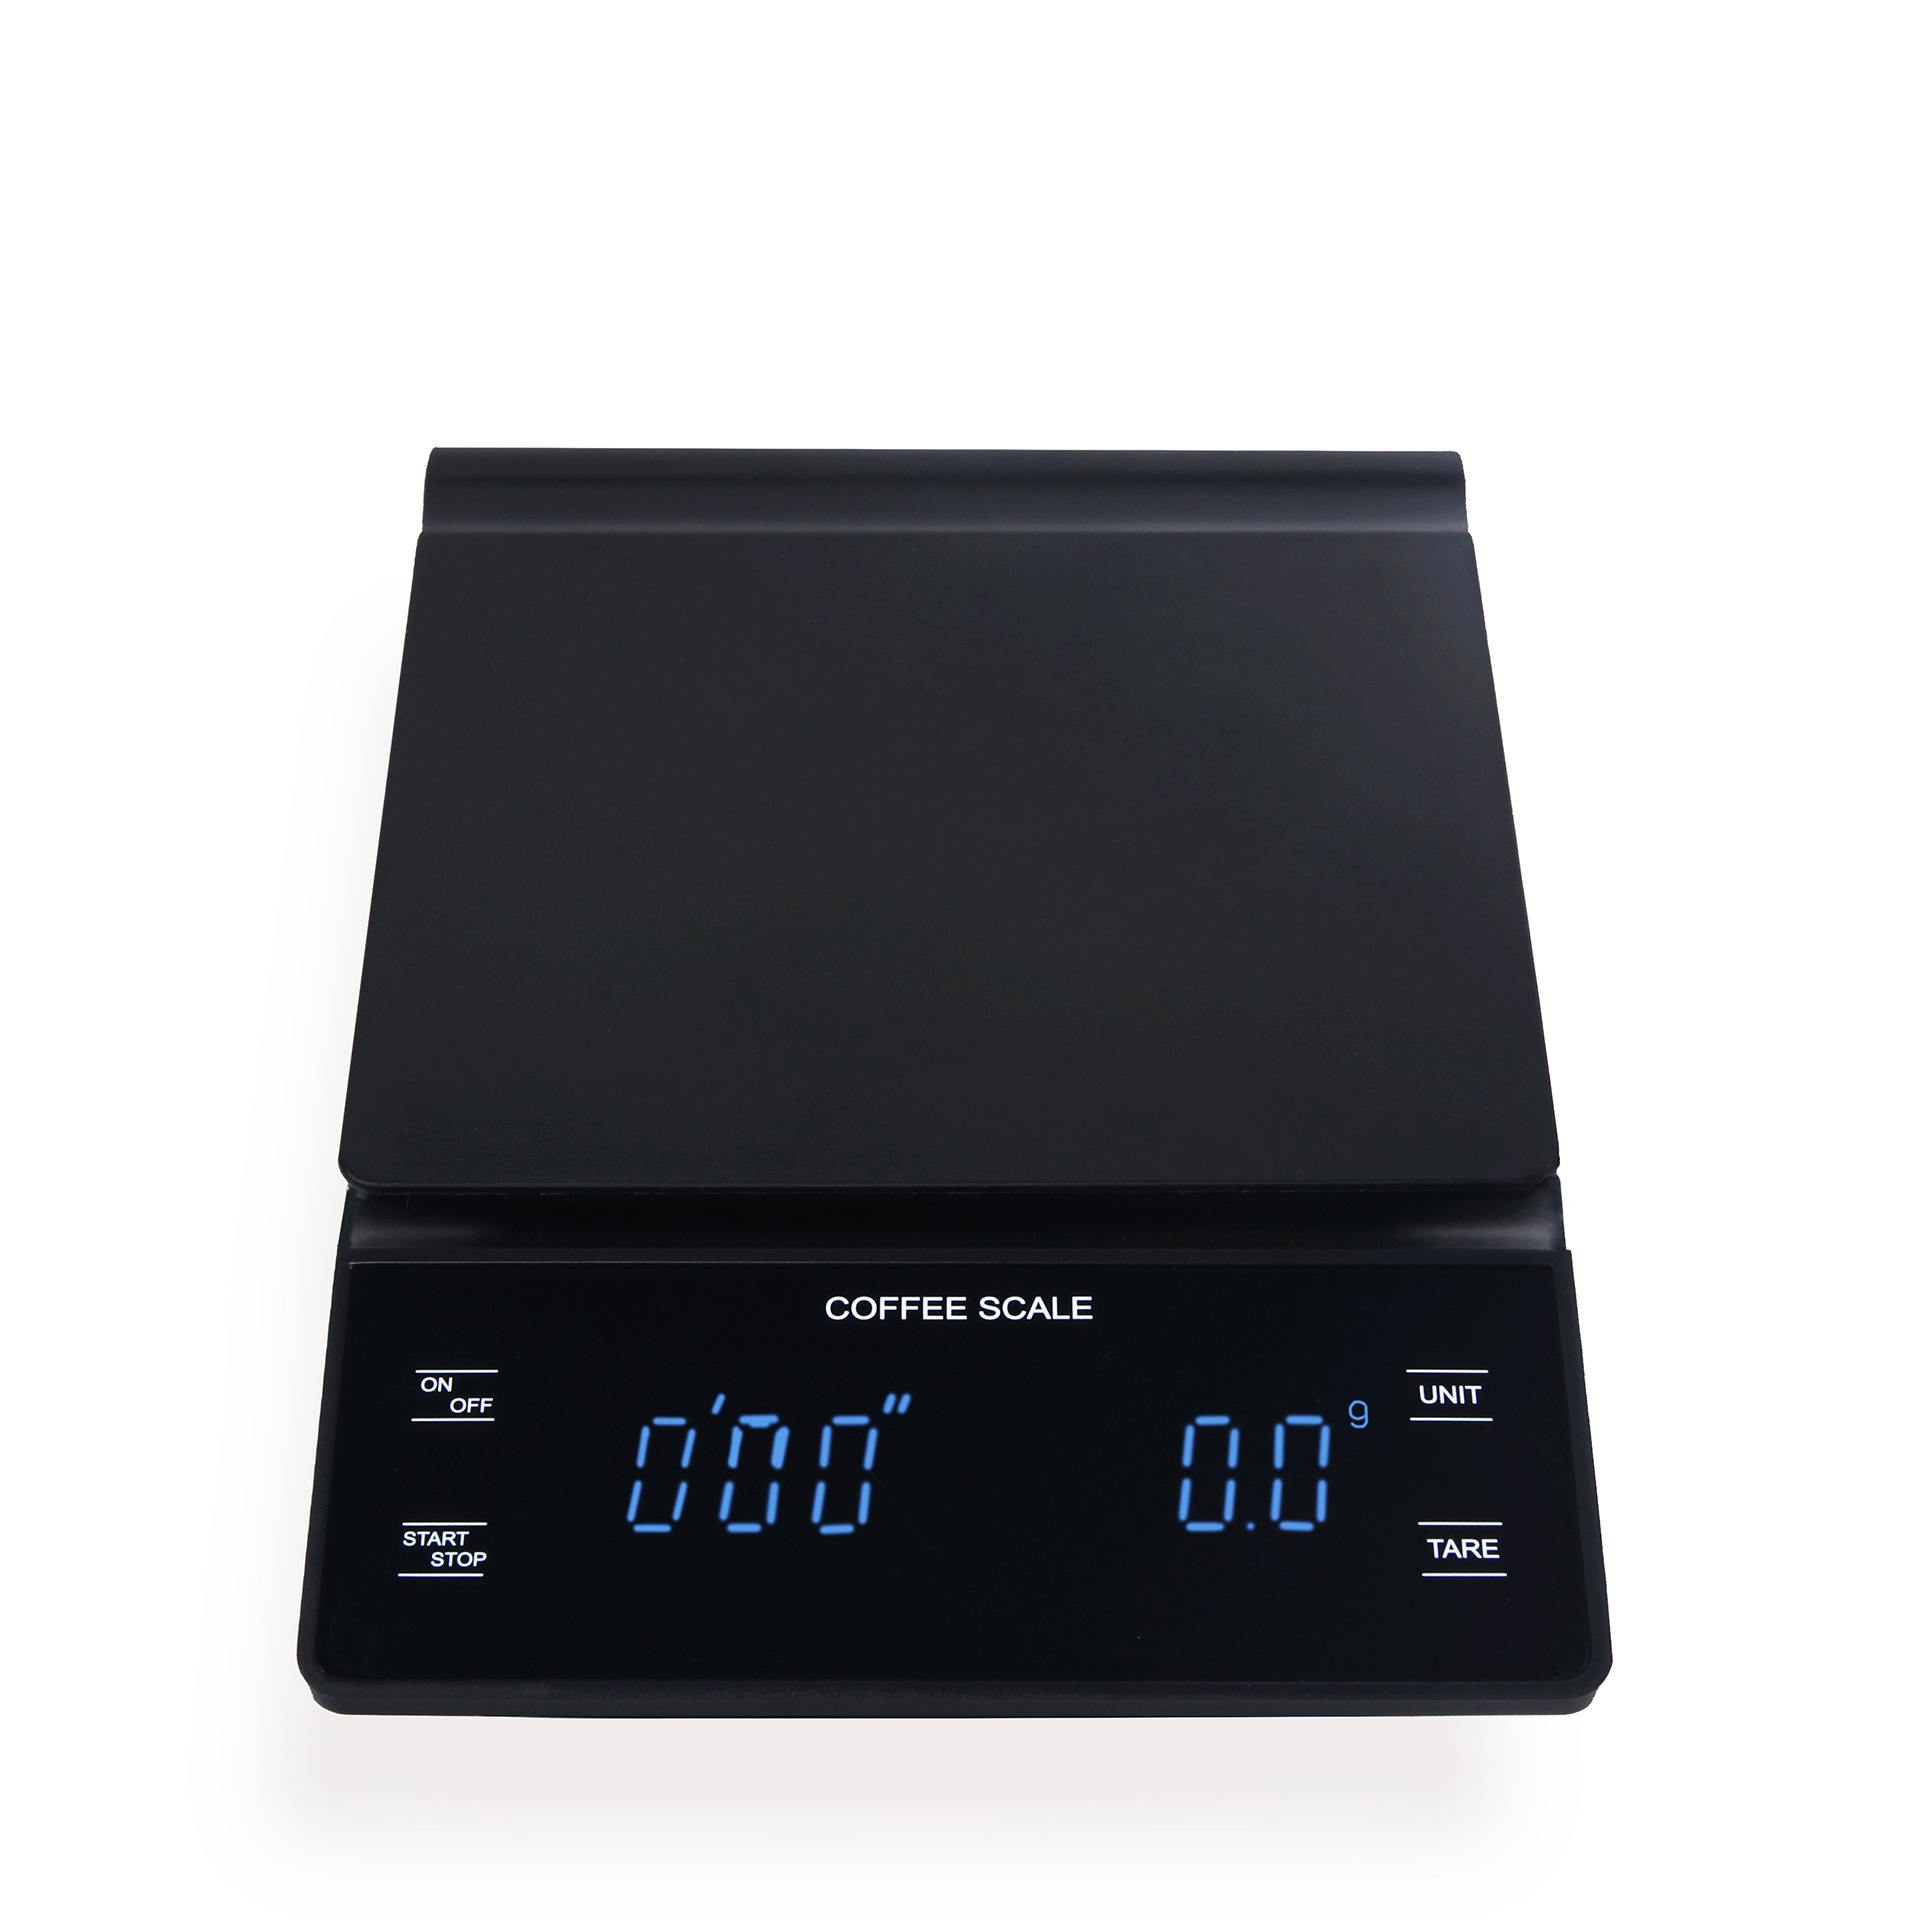 0.1g Digital Coffee Scale with Timer Electronic Scales Food Balance Measuring Weight Kitchen Coffee Scales black